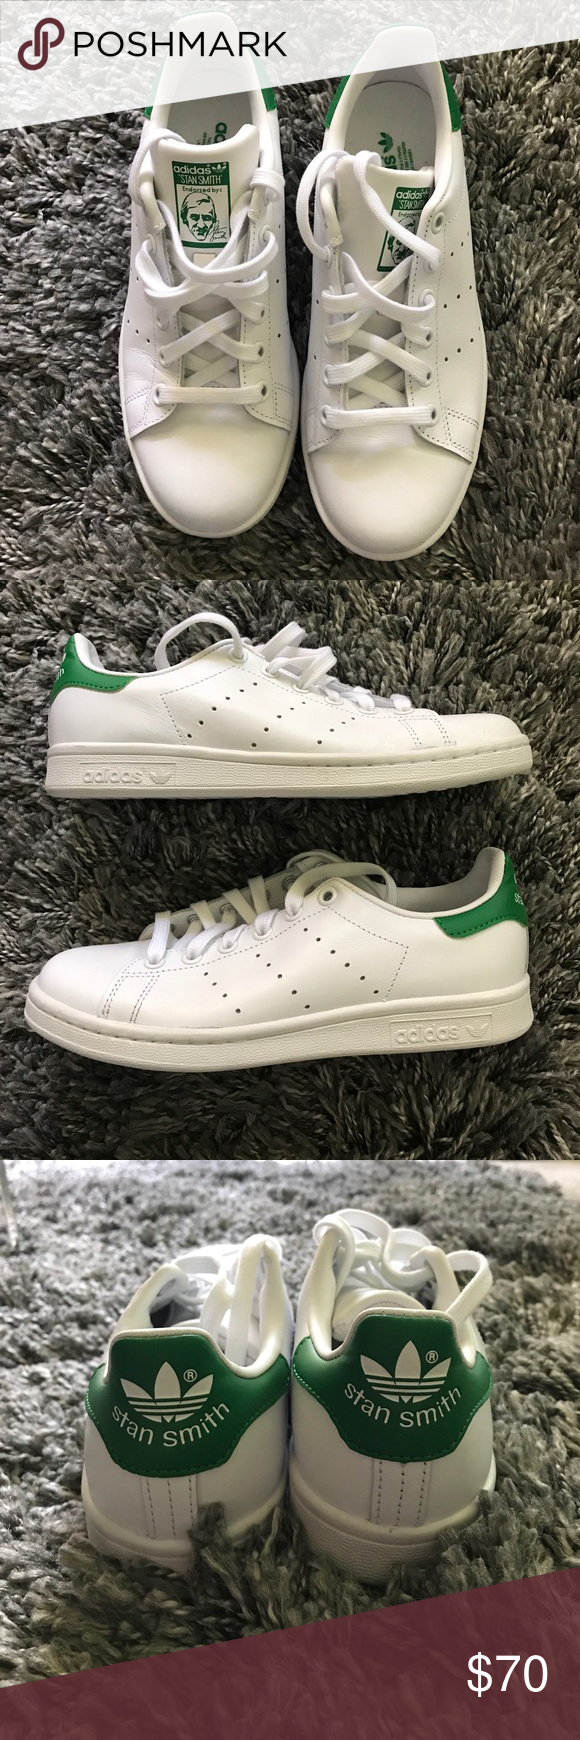 Adidas Stan Smith Pinterest Stan Smith, Adidas Stan Smith y